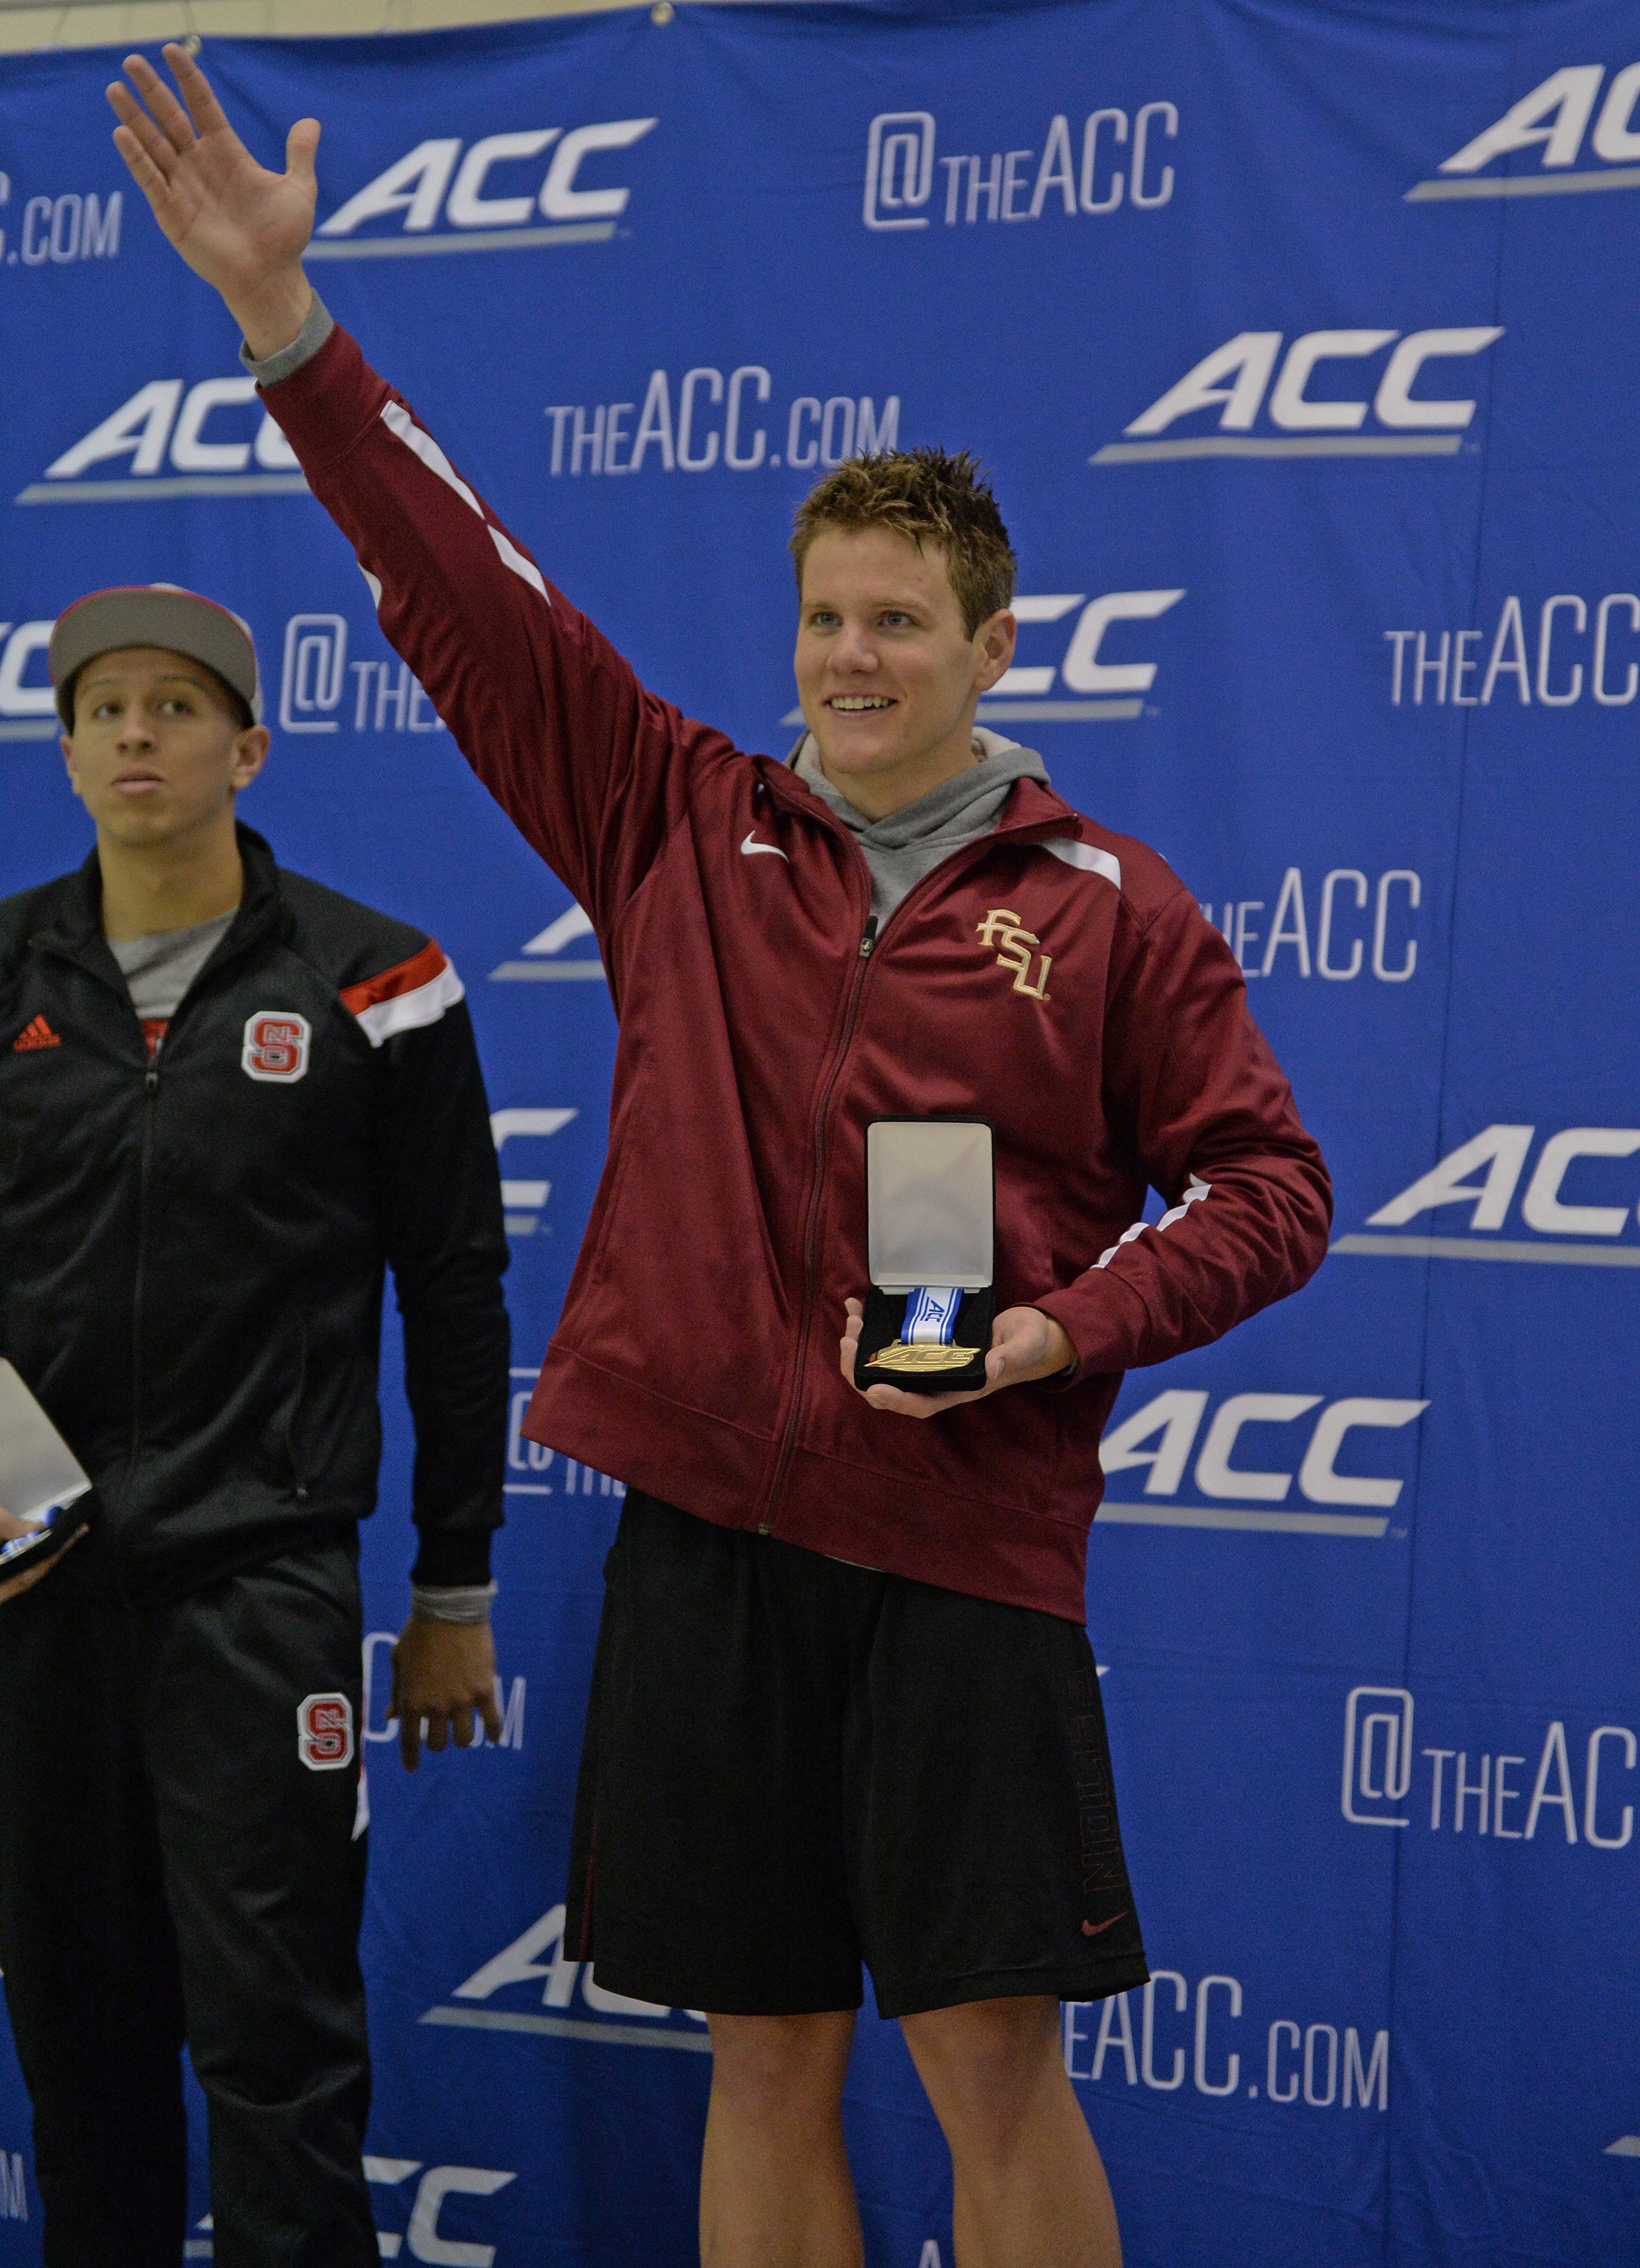 Connor Knight does the chop with the gold in the 200 fly - Mitch White